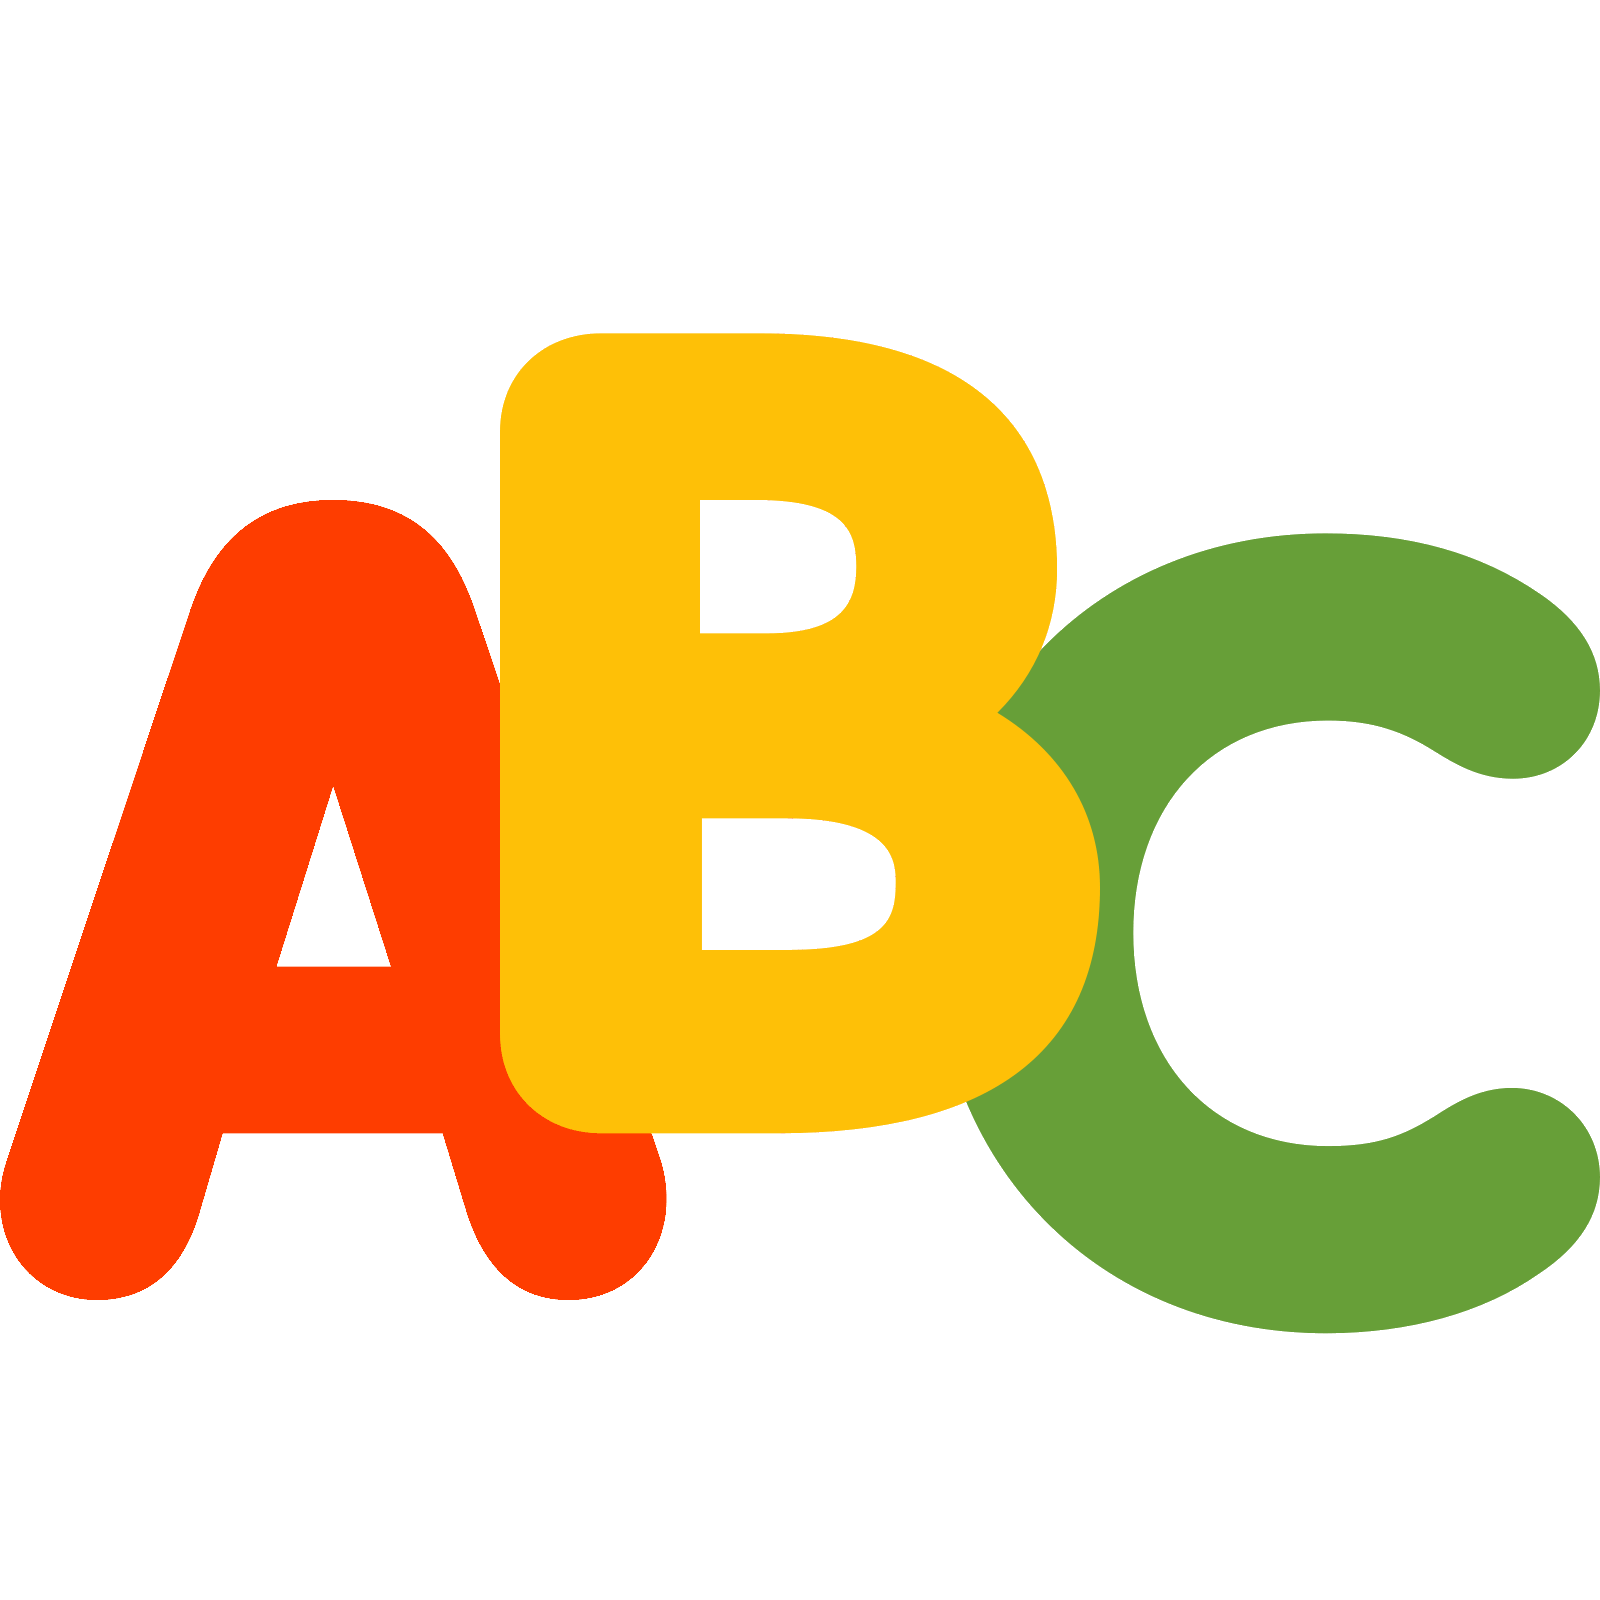 ABC icon. PNG 50 px - Abc Caffe Logo PNG